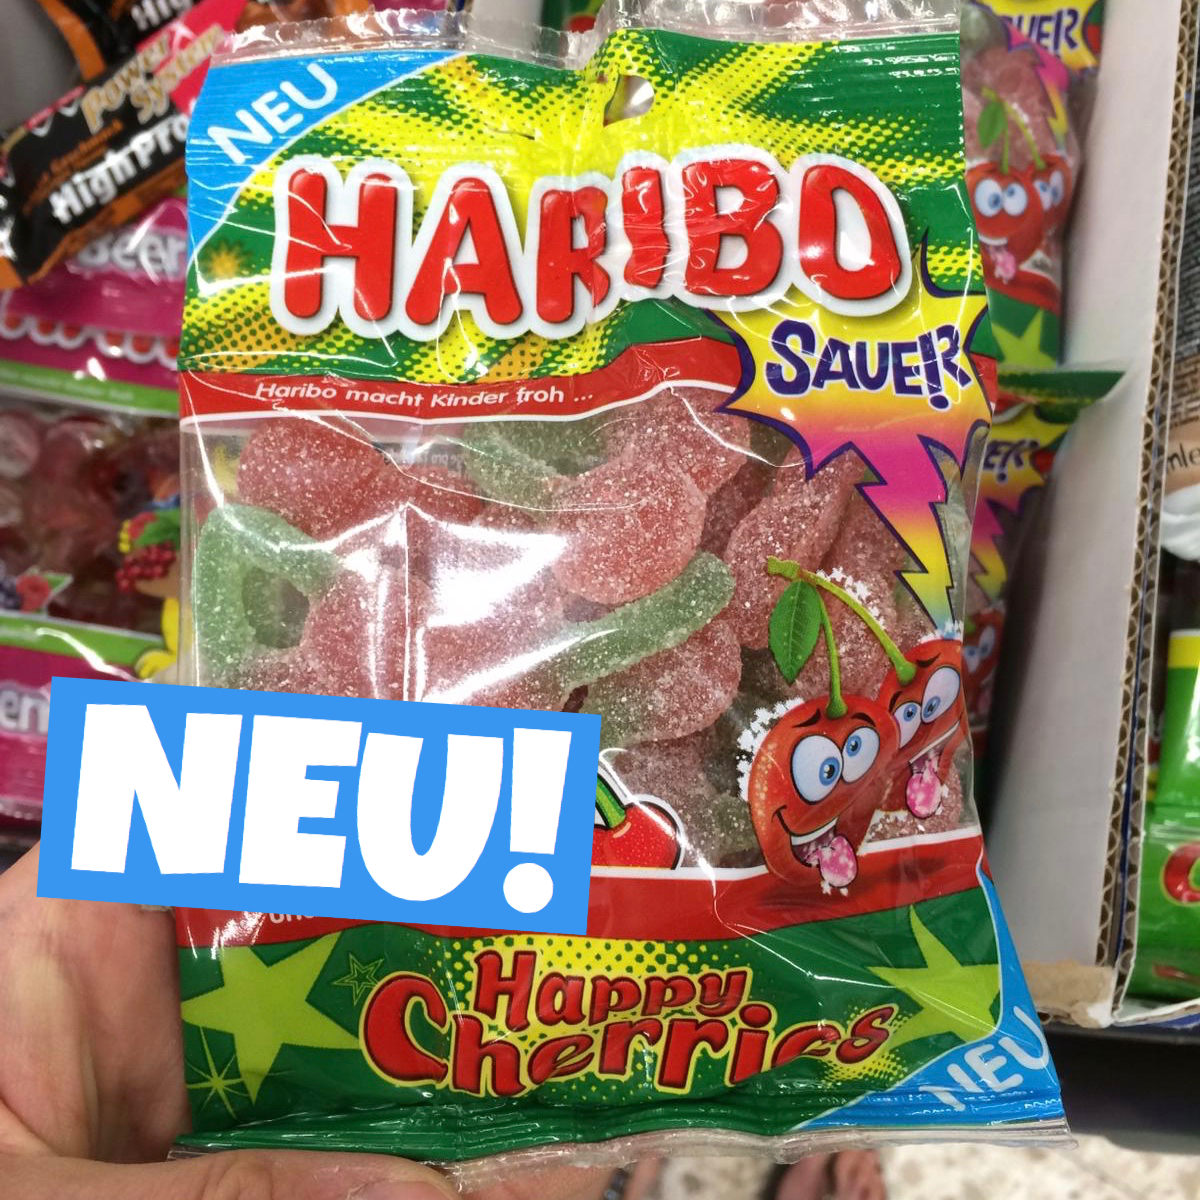 Haribo Happy Cherries sauer